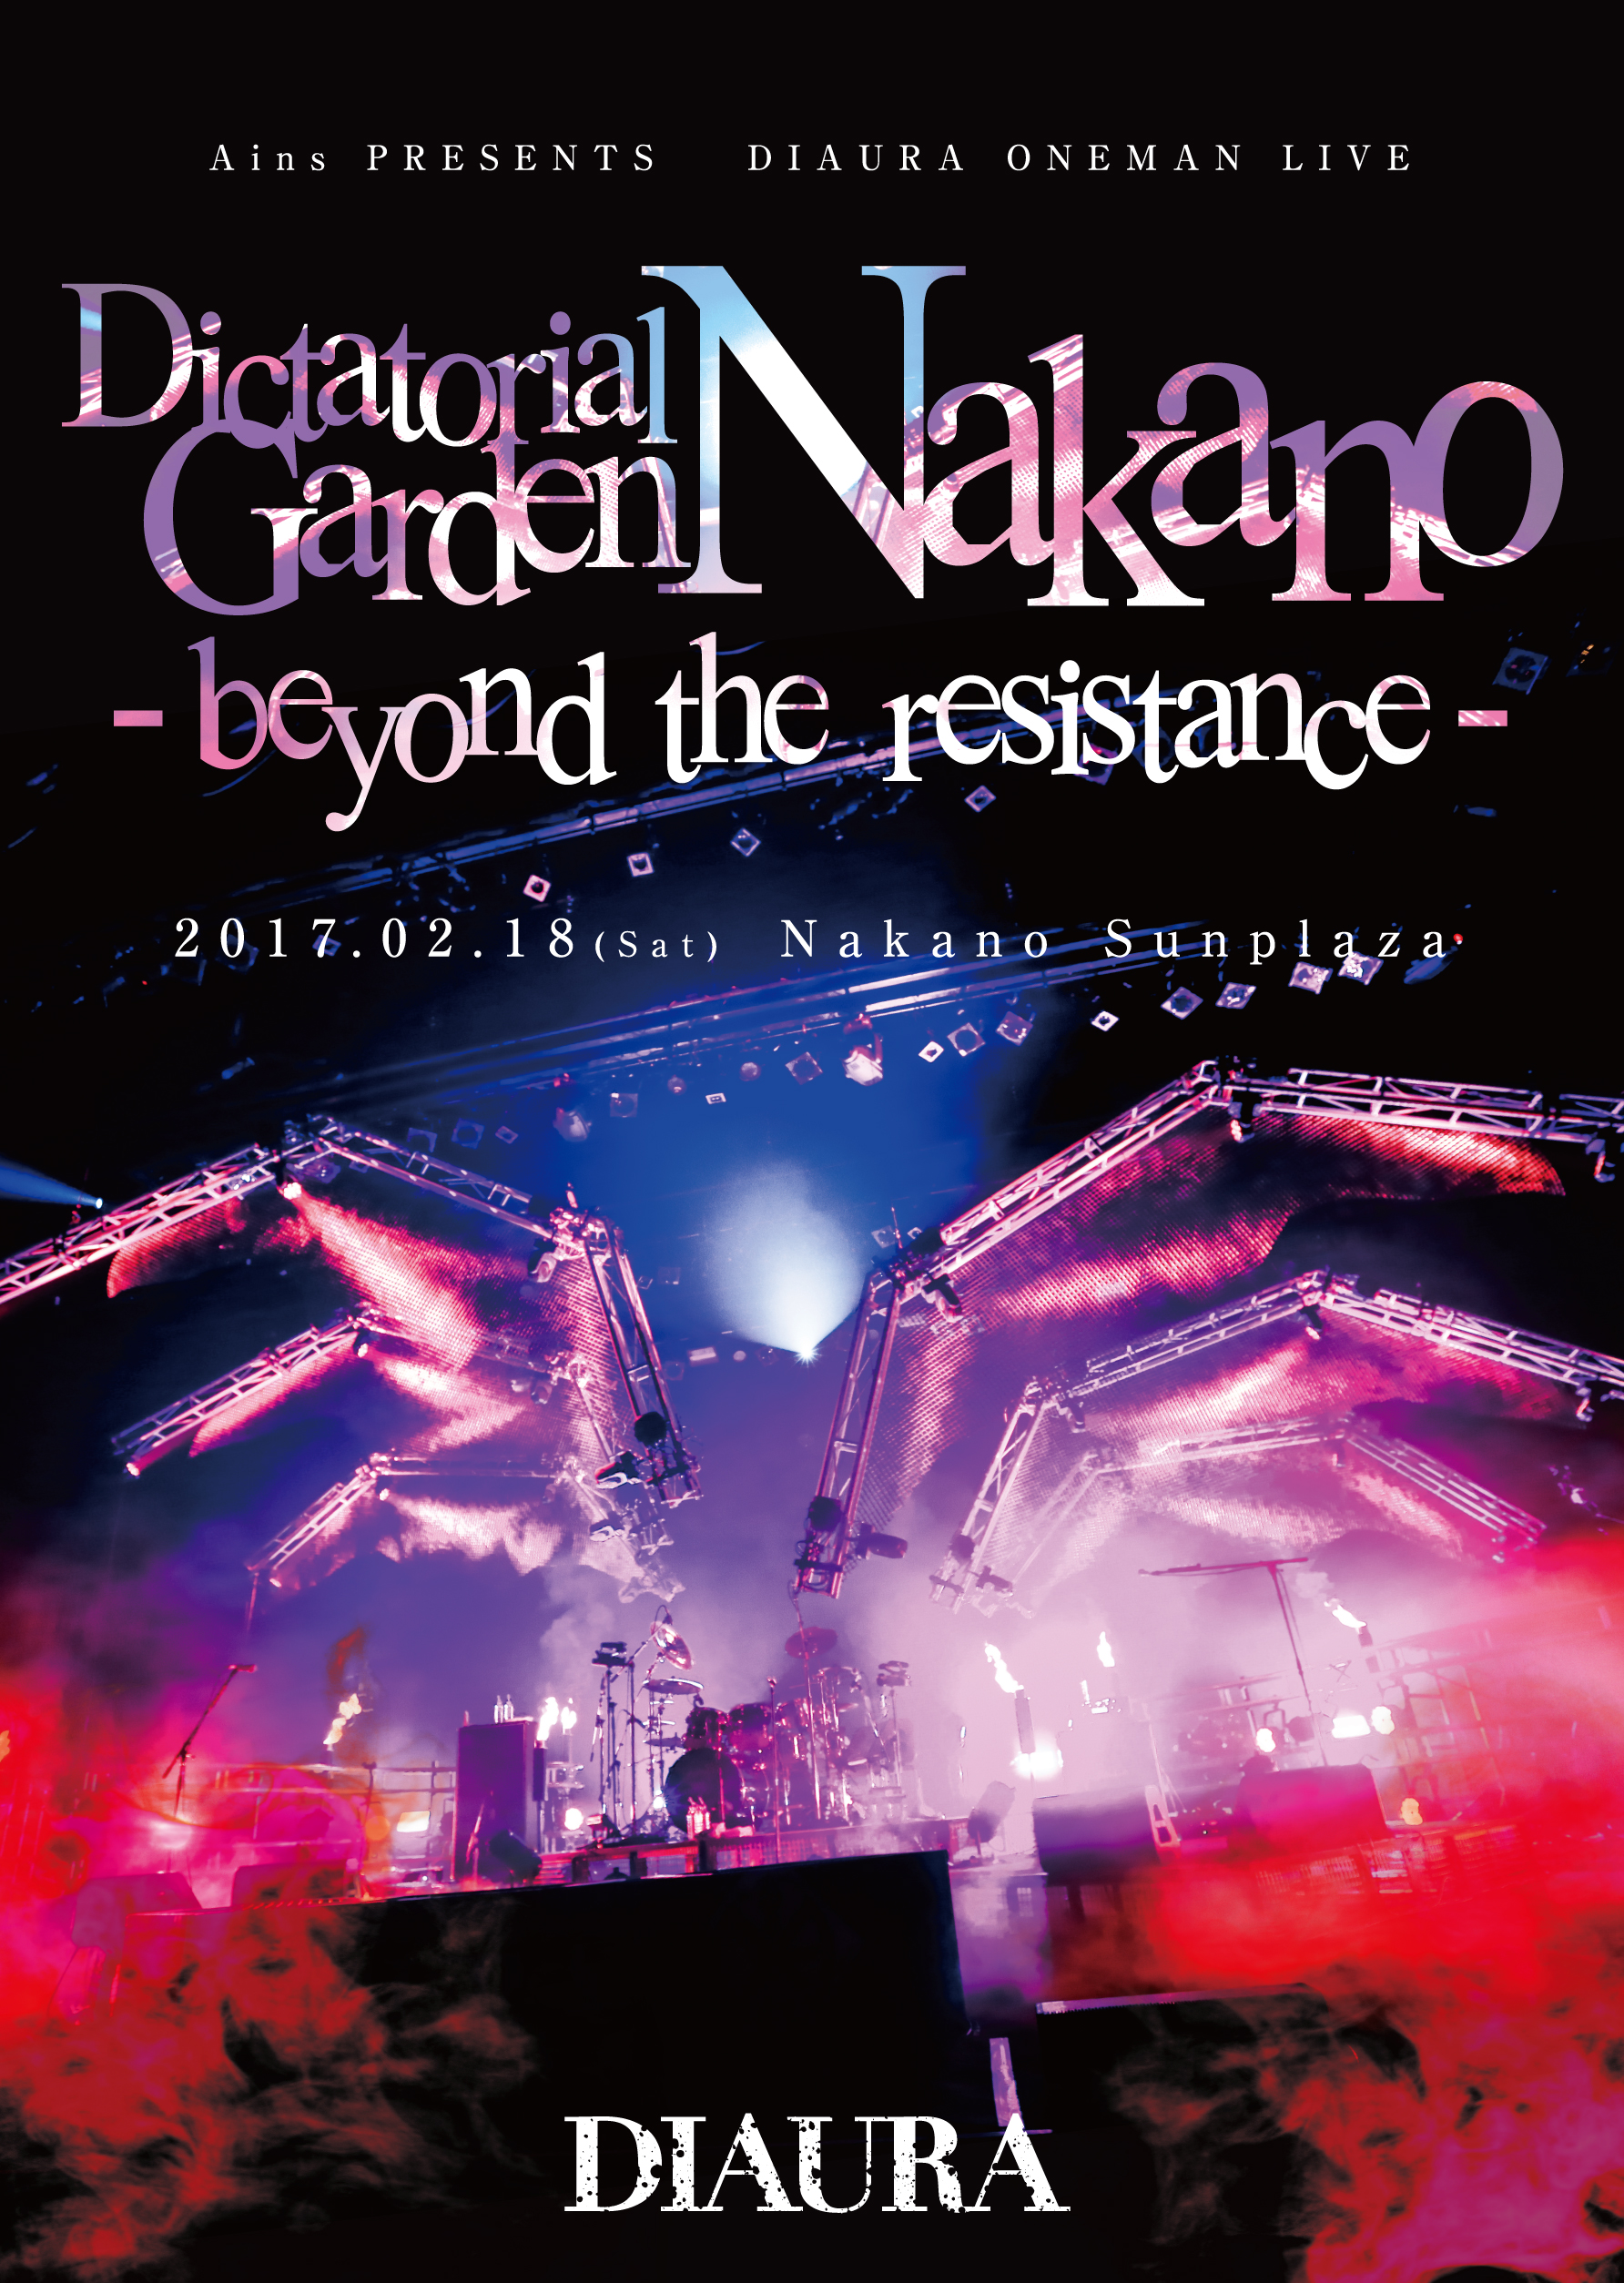 DIAURA の DVD Dictatorial Garden Nakano -beyond the resistance-